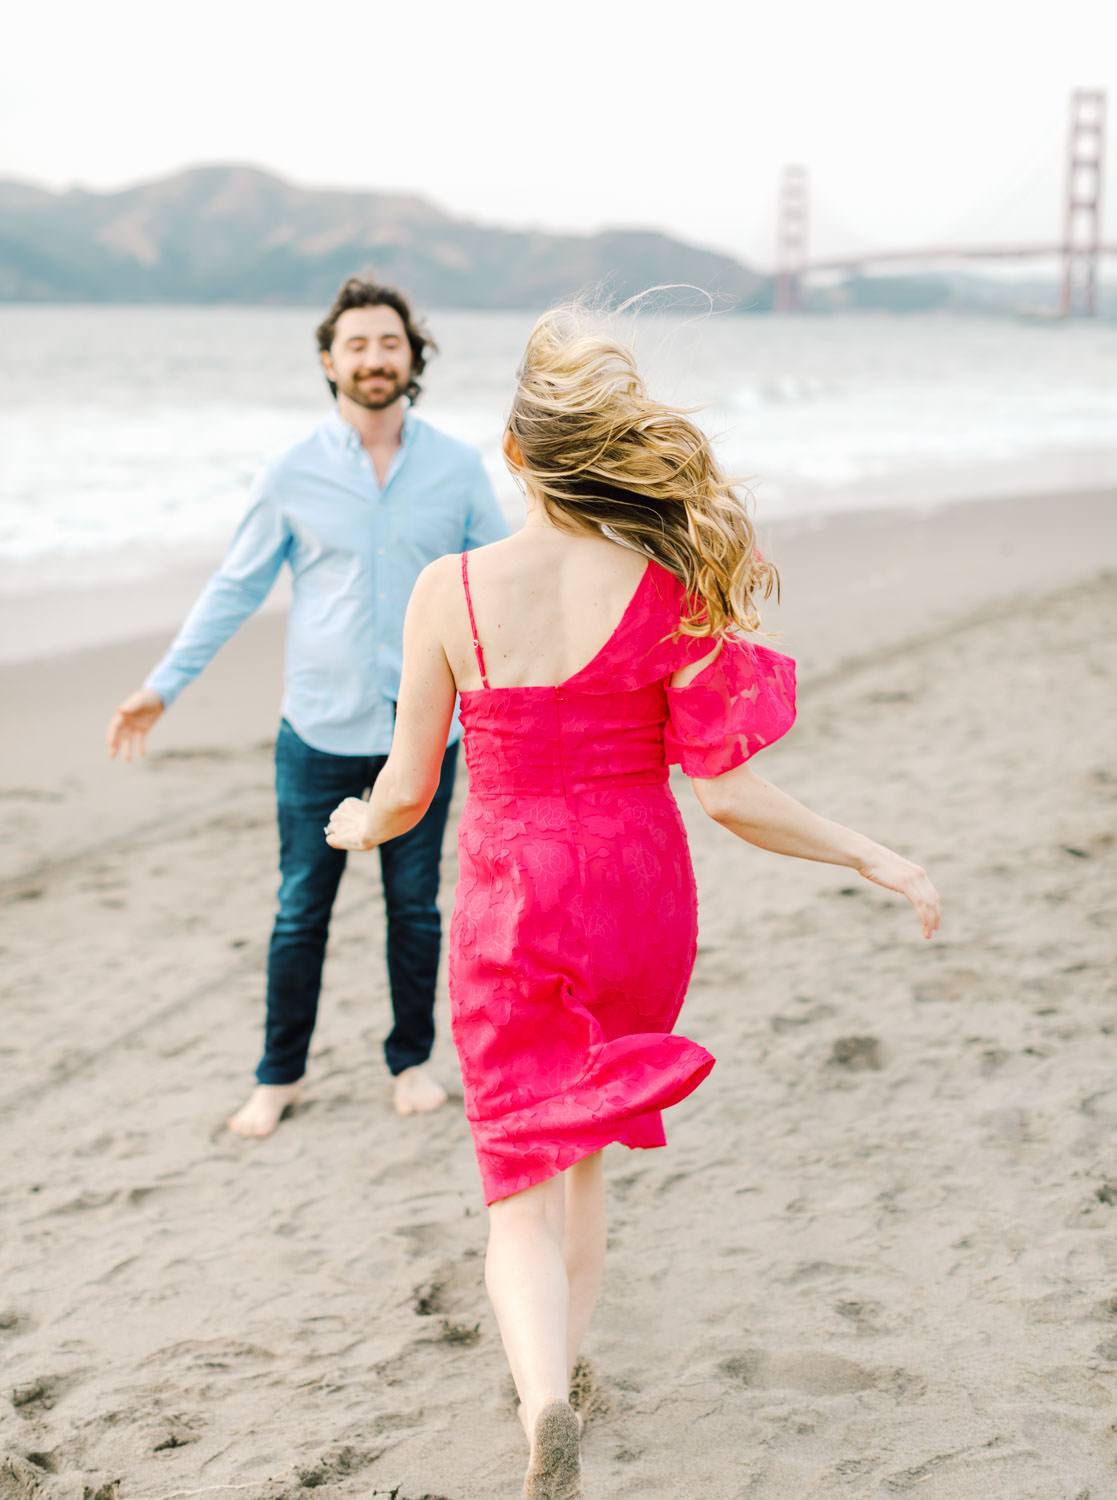 Bride in fuschia pink dress and groom in light blue button down and jeans. Baker Beach Engagement Session in San Francisco by Cavin Elizabeth